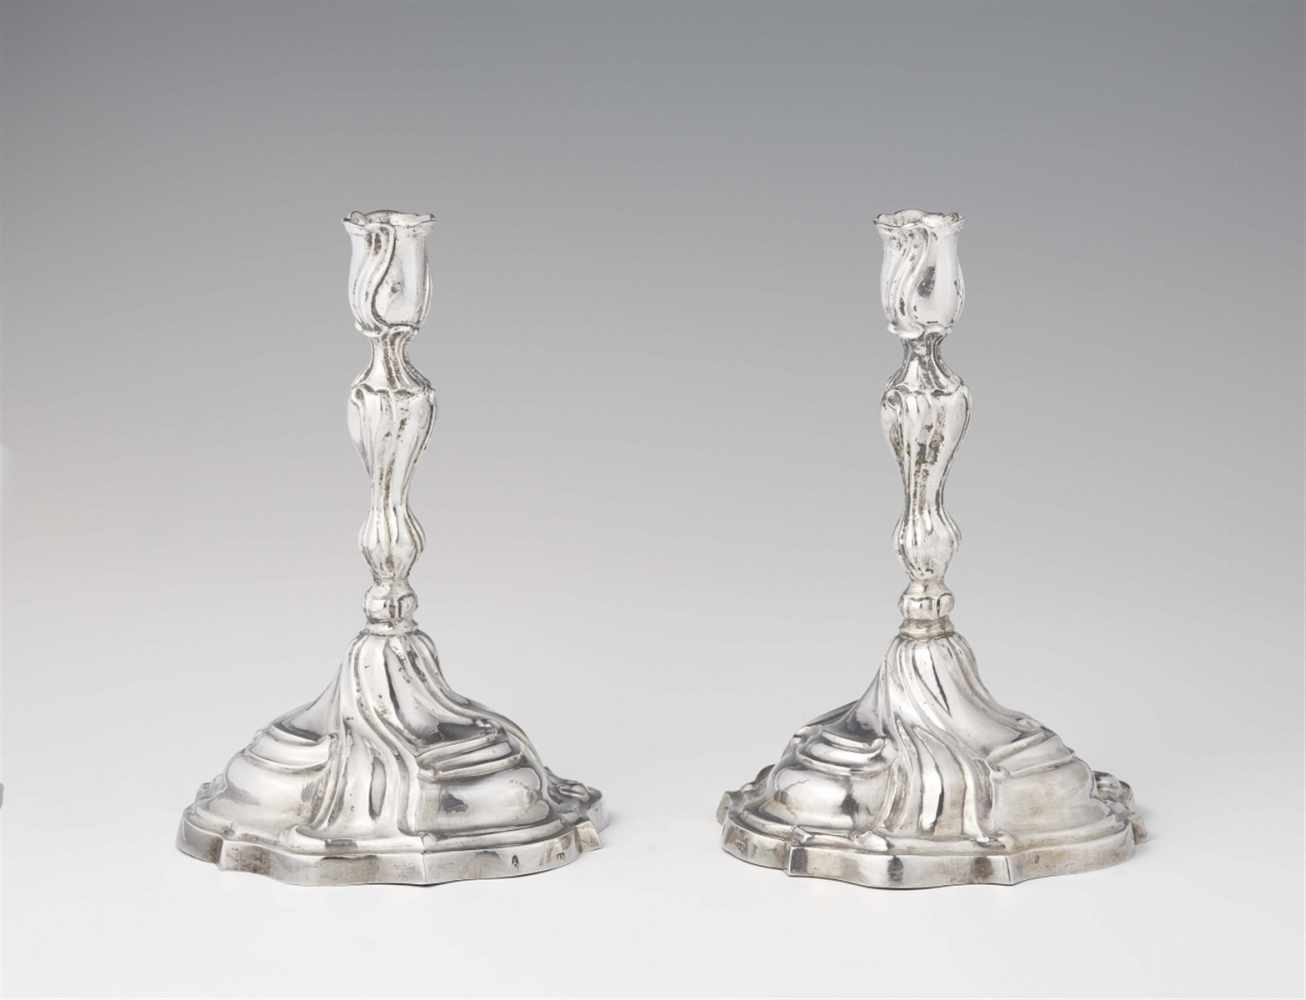 Lot 328 - A pair of Augsburg silver candlesticks by Johann HeckenauerRound scalloped base supporting a twist